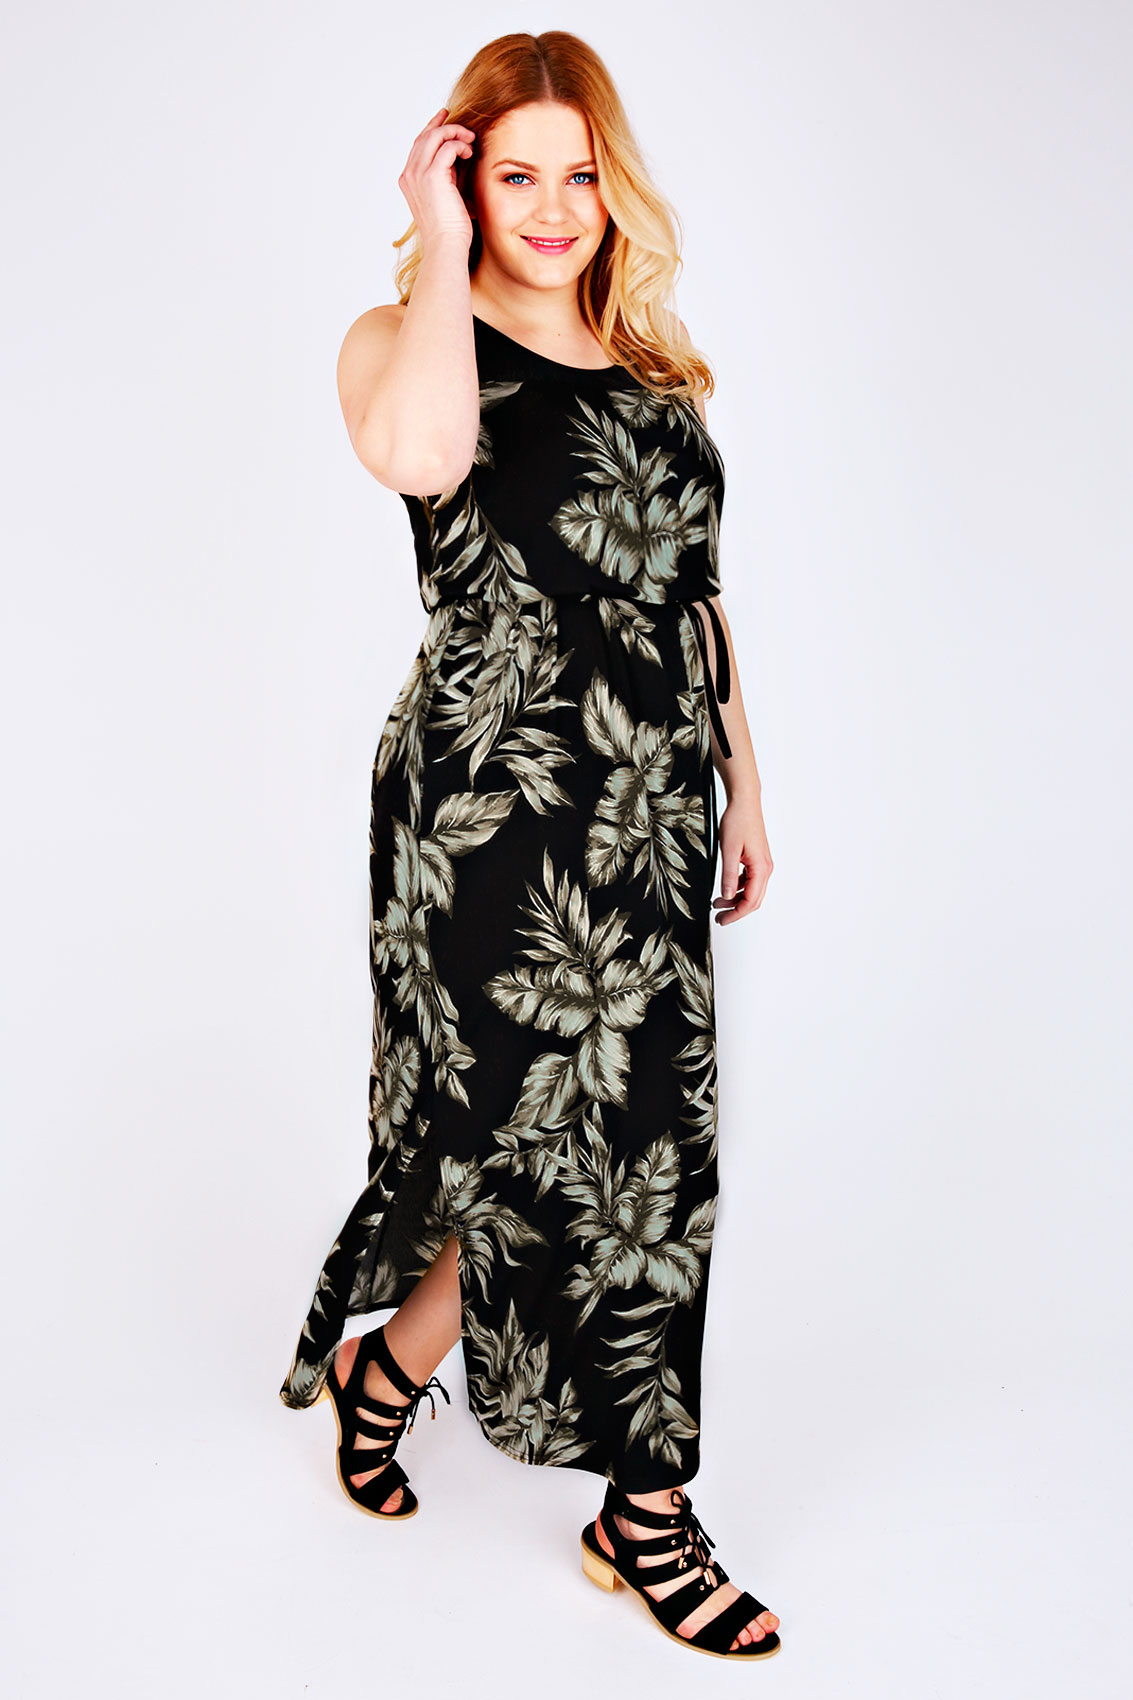 Related Searches For Palm Print Skirt Belted Maxi Dress Black White - Clearance Womens Dress Clothing on Clearance, Clearance Dresses, Womens Dresses with Sleeves Clearance, Clearance Dresses, Black Strapless Tops, Cropped Tube Top, Plus Size Blouses Clearance, Clearance Blouses, Plus Size Women Shirts Clearance, Black Pullover Style Clearance.